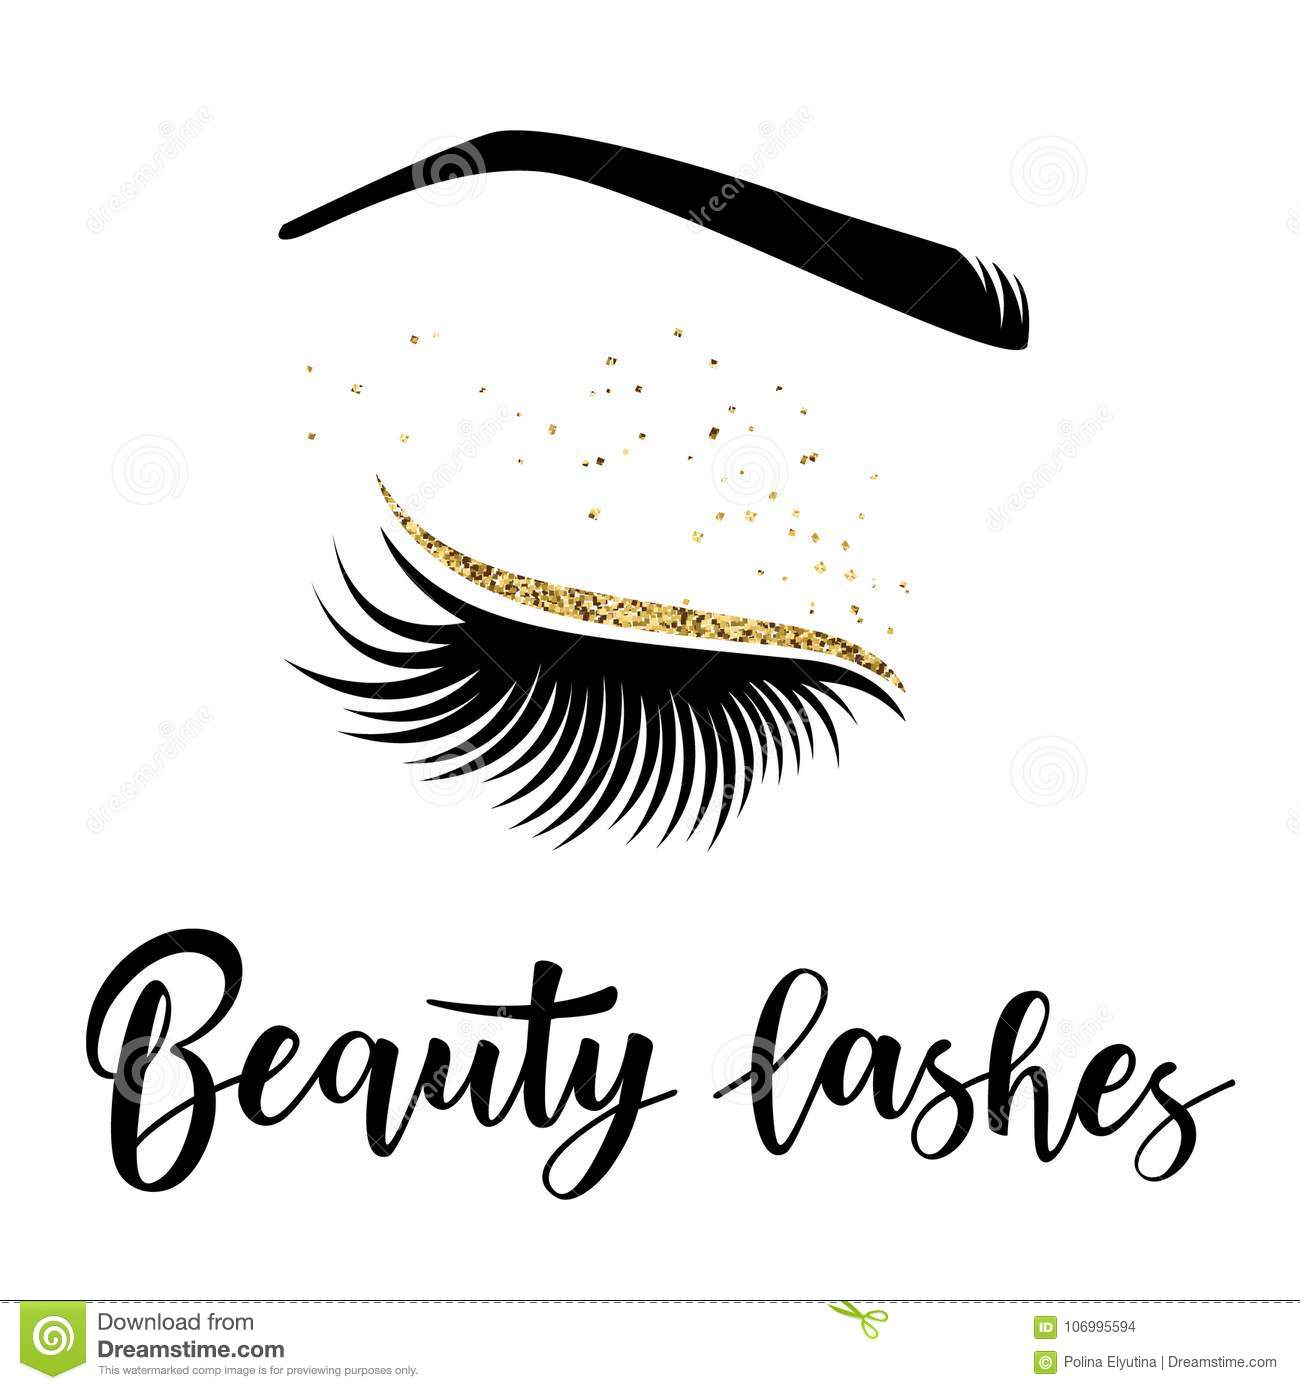 f987f38b6e2 Lashes lettering. Vector illustration of beauty lashes. For beauty salon,  lash extensions maker, brow master. More similar stock illustrations